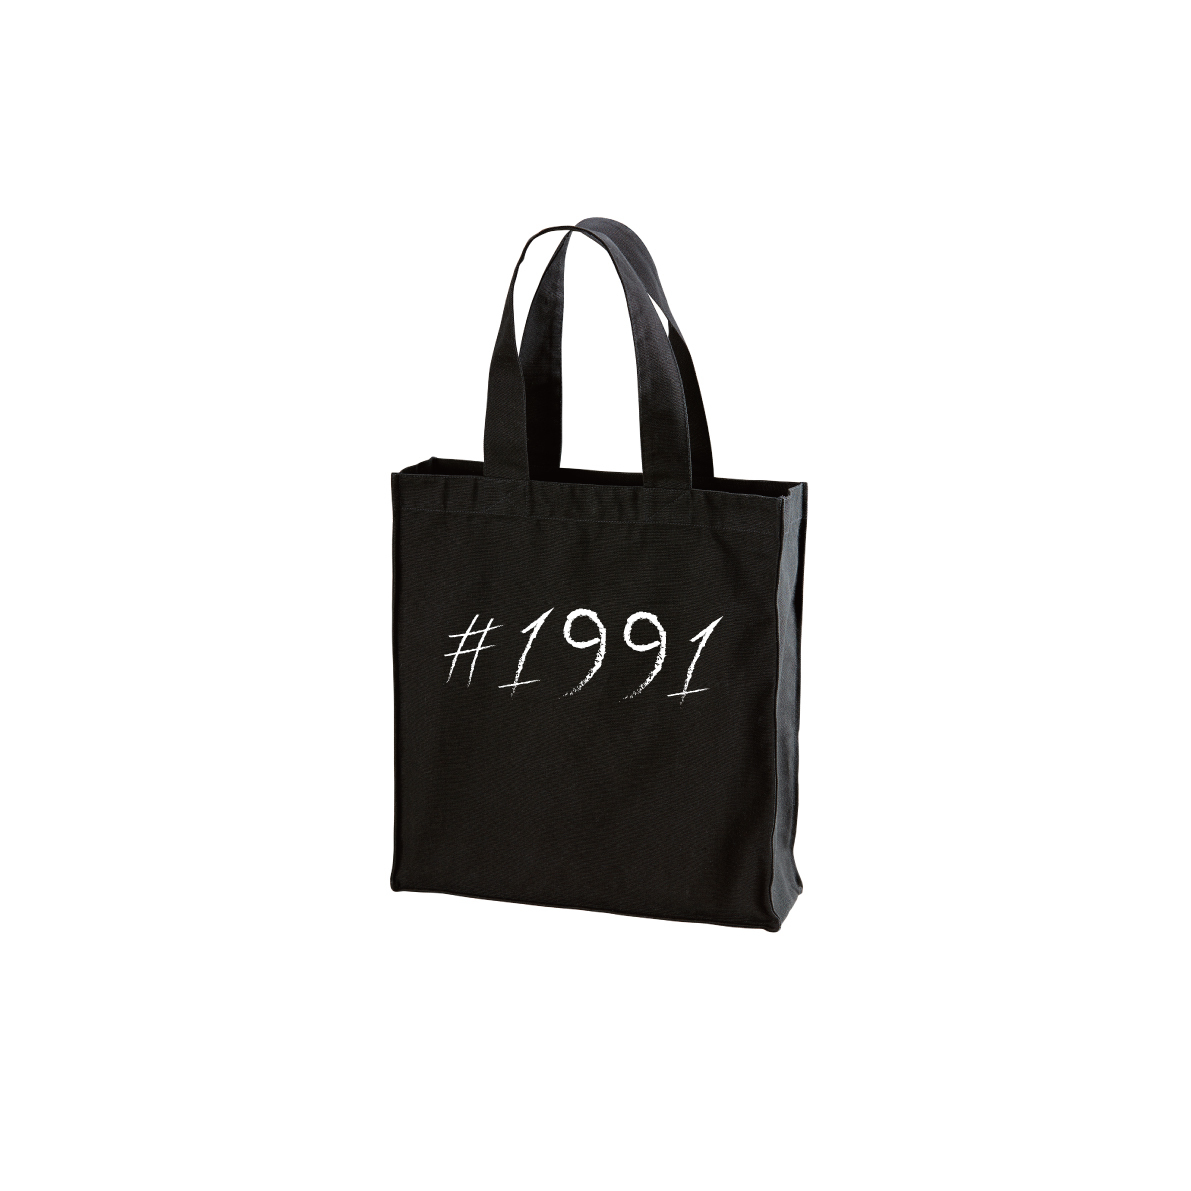 1991 Big Bag(BLACK)